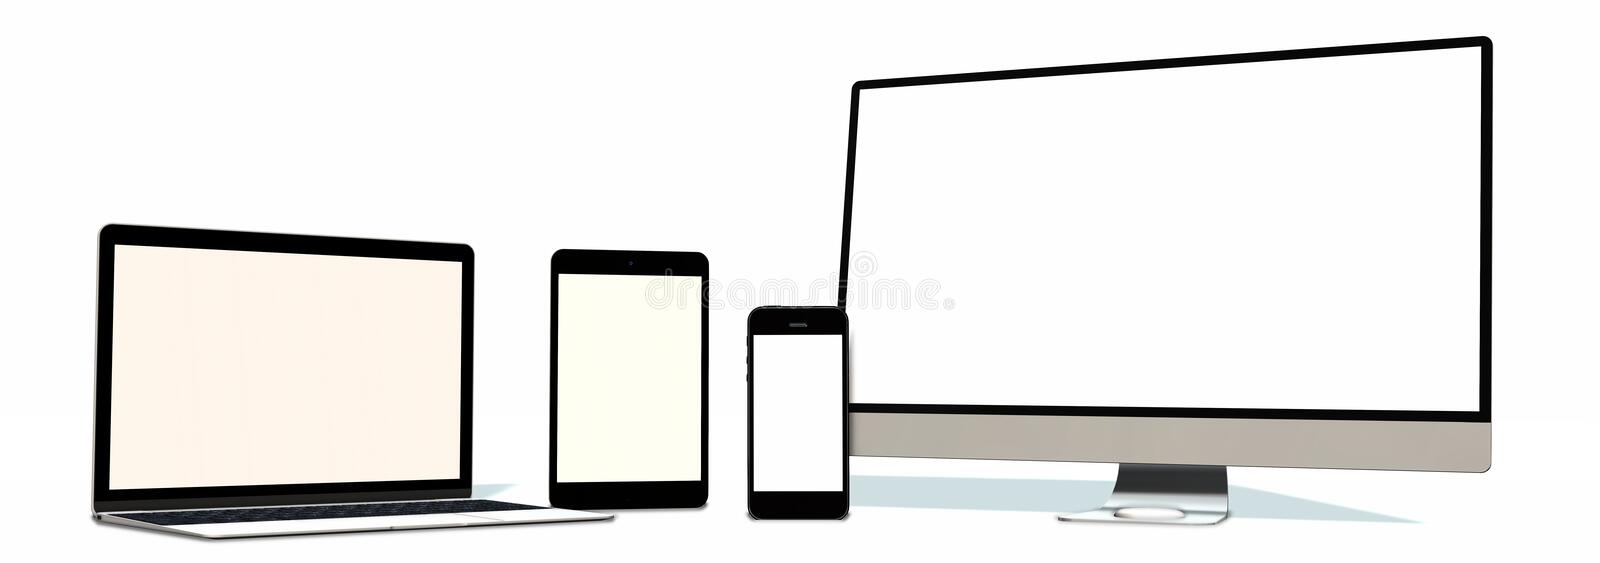 Realistic Monitor laptop tablet and phone set isolated on white vector illustration